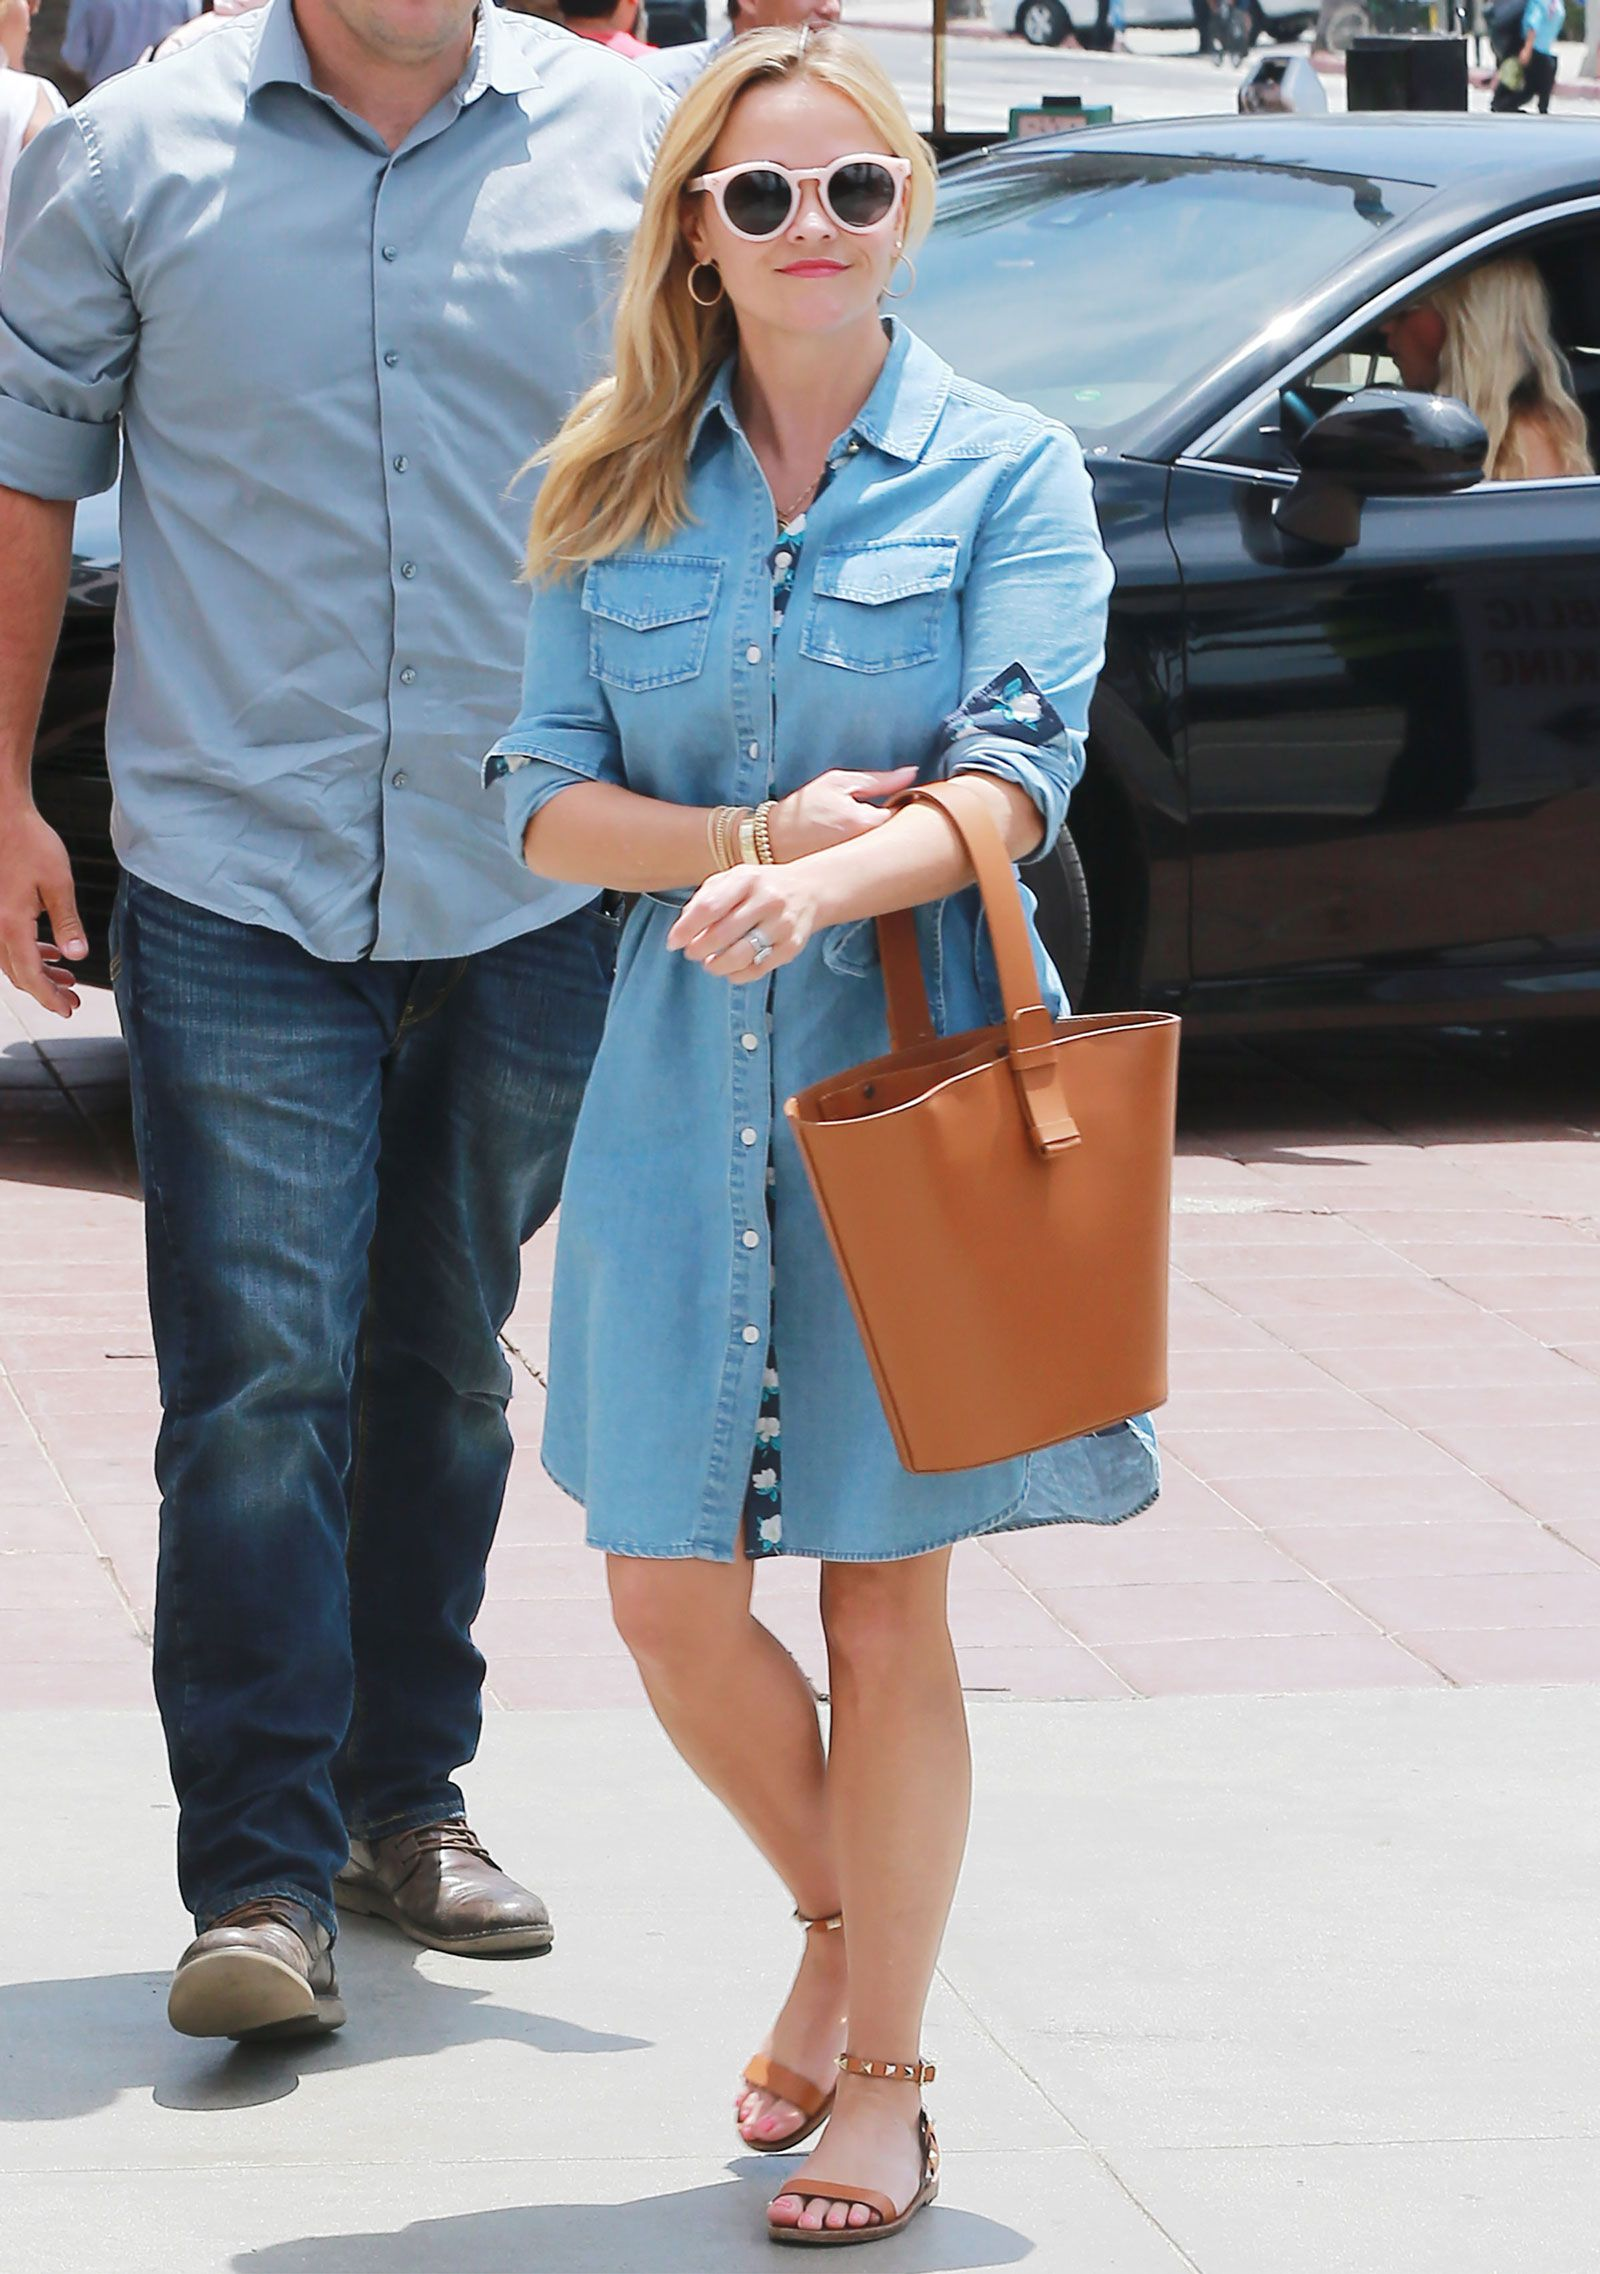 Get The Draper James By Reese Witherspoon Denim Shirtdress Look For Less Reese Witherspoon Style Denim Dress Summer Outfit Denim Shirt Dress [ 2274 x 1600 Pixel ]